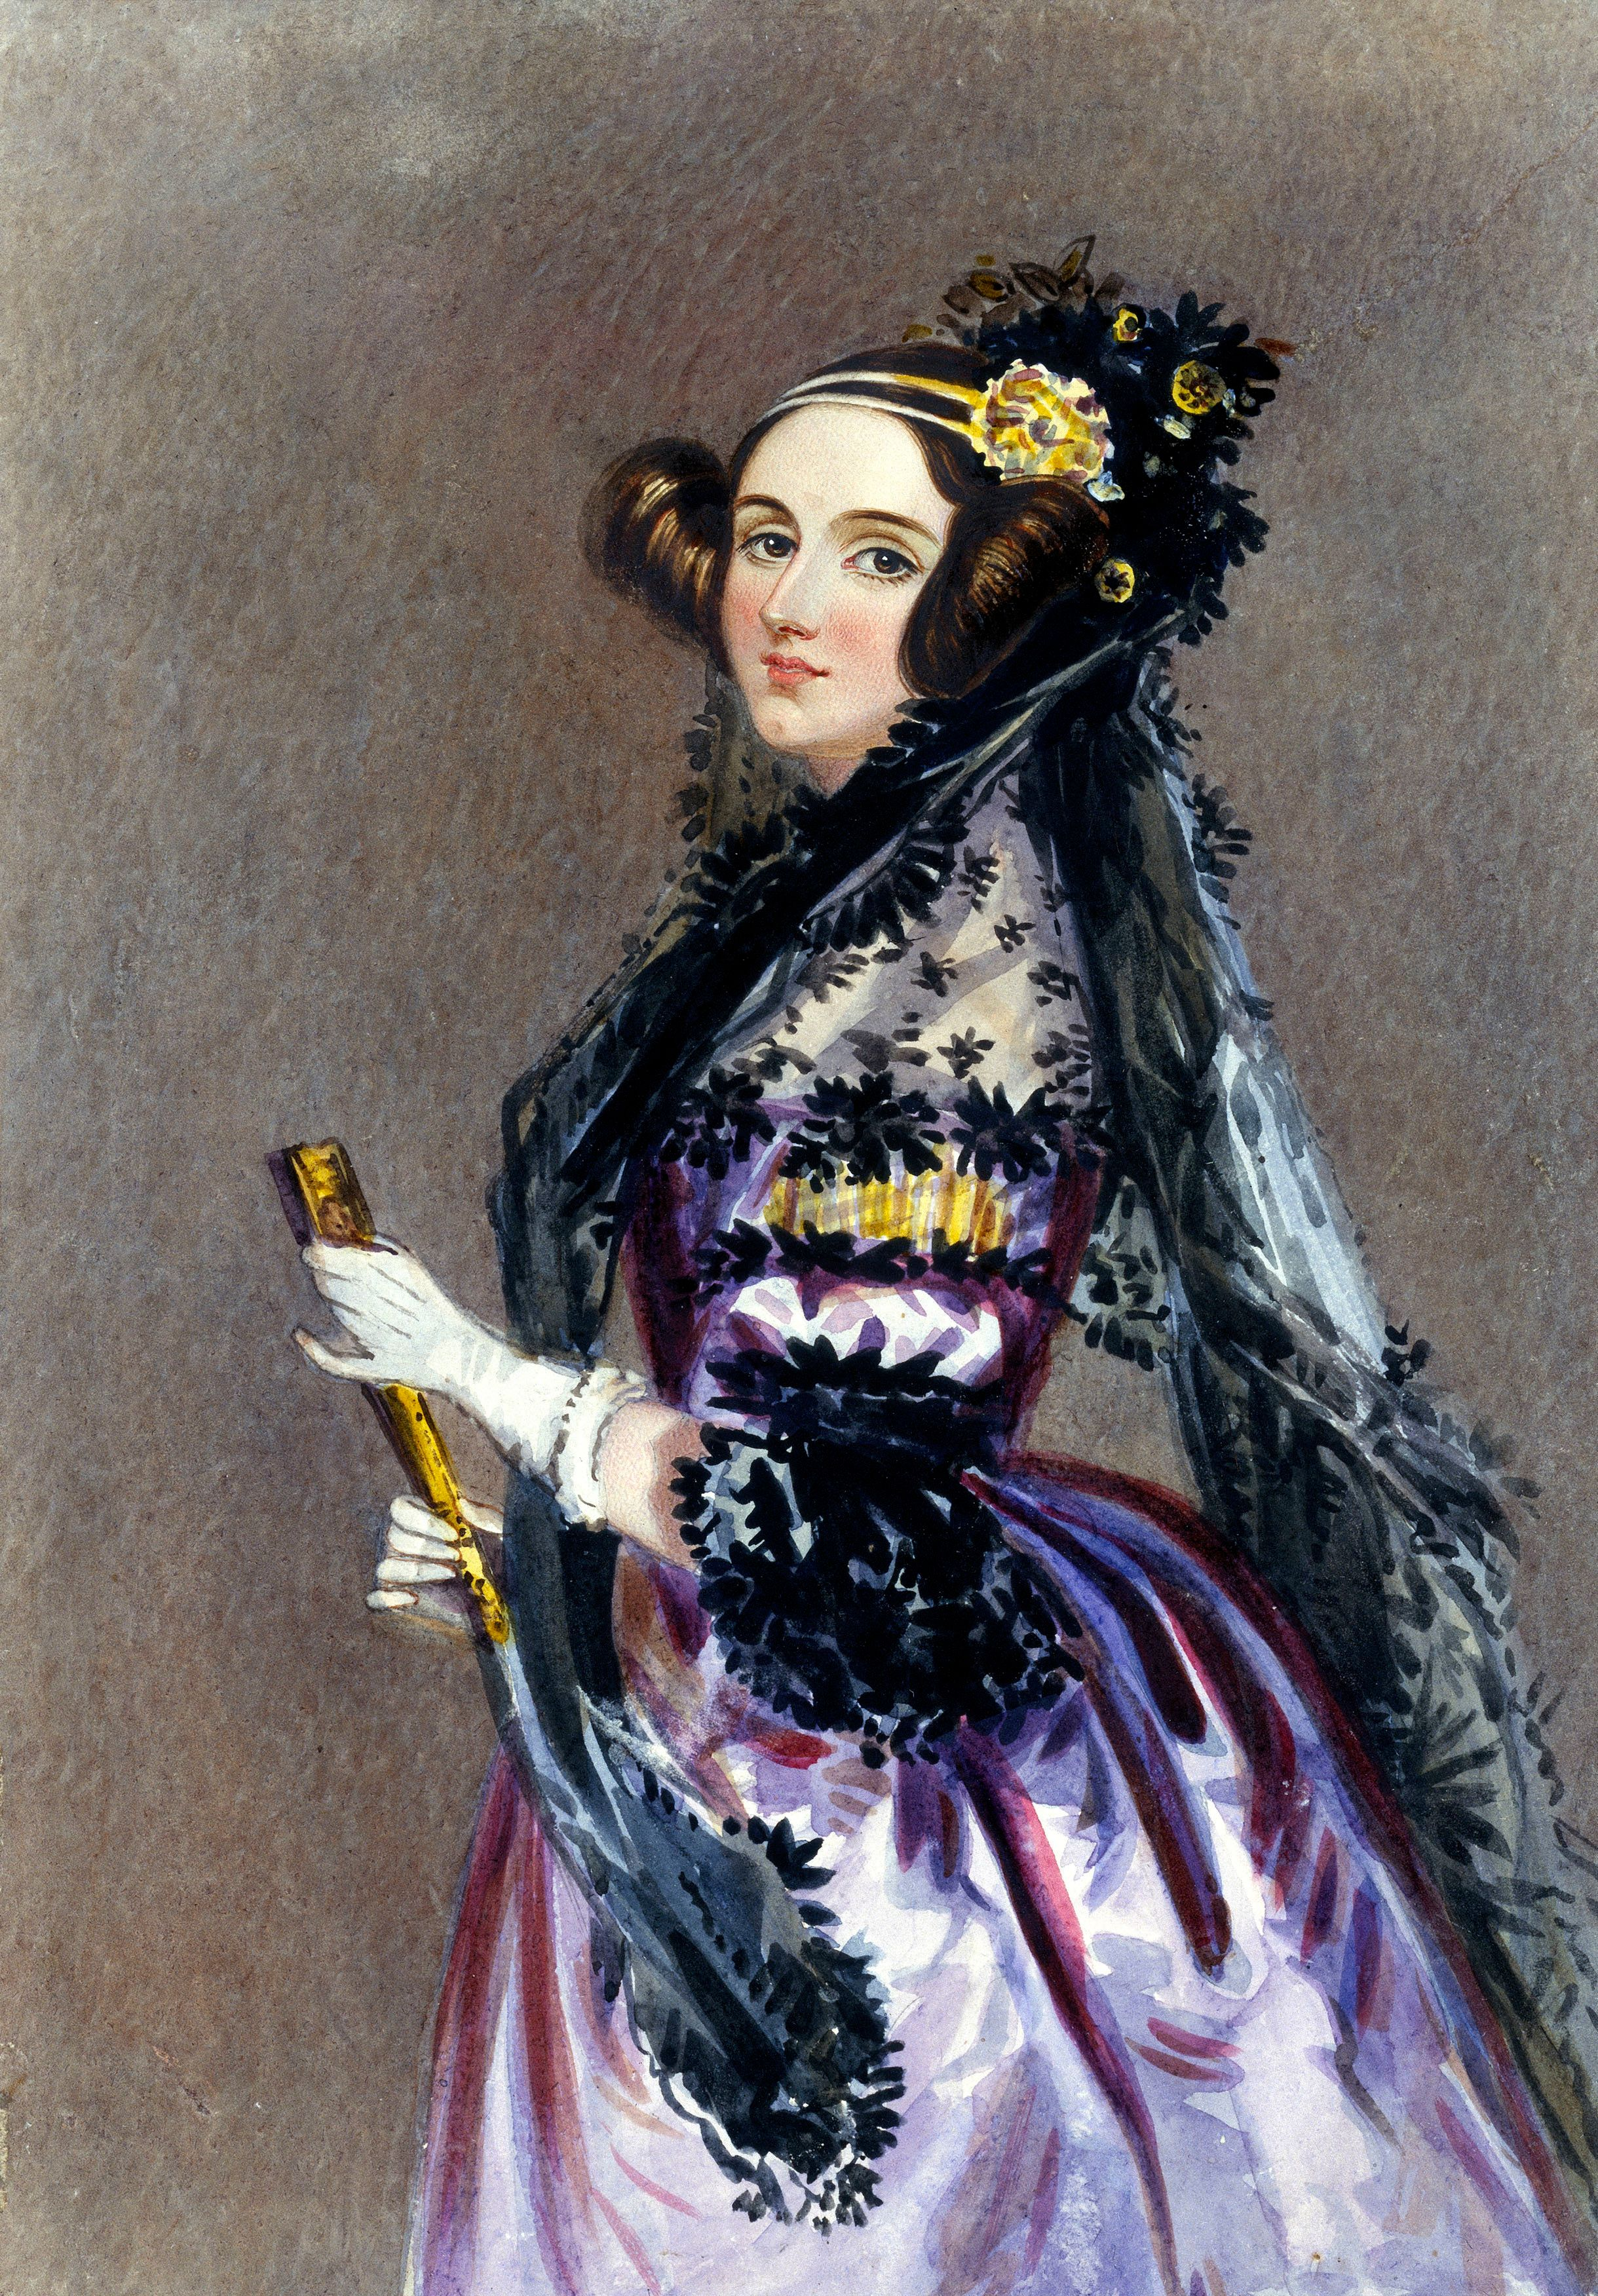 UNITED KINGDOM - JULY 27:  Watercolour portrait by Alfred Edward Chalon of Ada King wearing evening dress with a mantilla and holding a fan. Augusta Ada King, Countess of Lovelace (1815-1852) was the daughter of the great Romantic poet Lord Byron (1788-1824). She was a writer and a trained mathematician. King acquired fame by working with Charles Babbage (1791-1871) on the world's first computer, the �Analytical Engine�, which could carry out many different types of calculations. She designed several computer programmes for the engine which were coded onto cards with holes punched in them - thus becoming the world's first computer programmer. The universally recognised computer language ADA is named after her. Dimensions: 250mm x 183mm.  (Photo by SSPL/Getty Images)